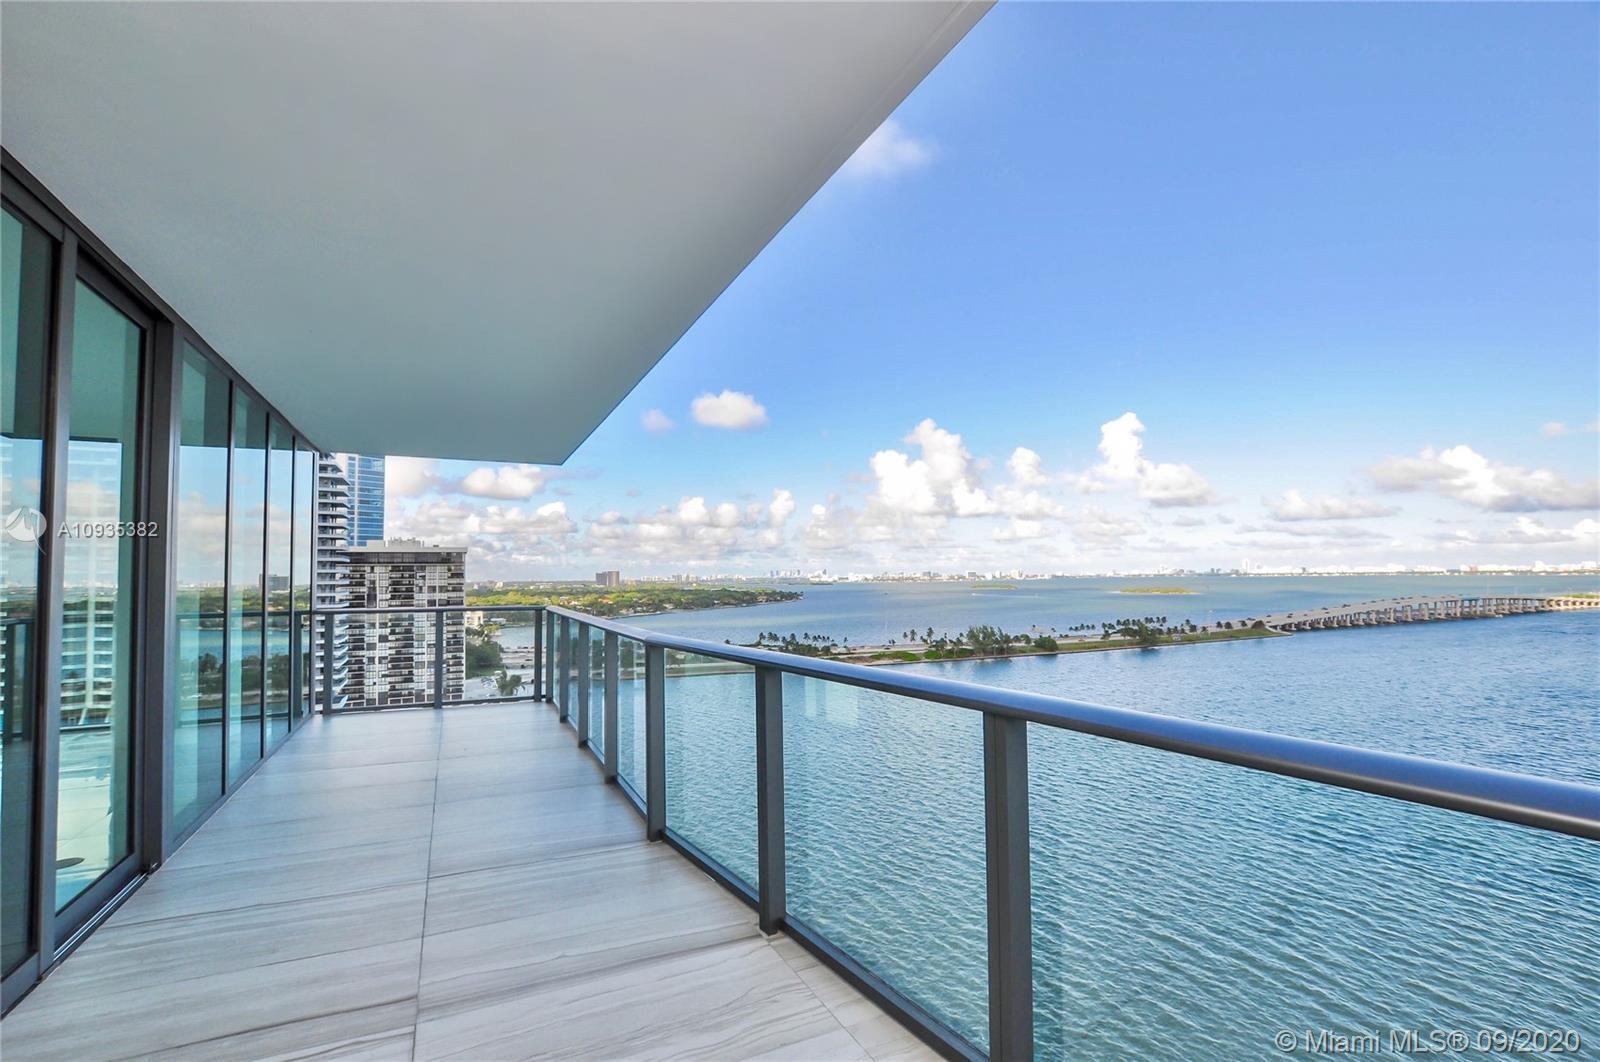 Unobstructed Bay views overlooking Biscayne Bay with spectacular views from every room. Located in t